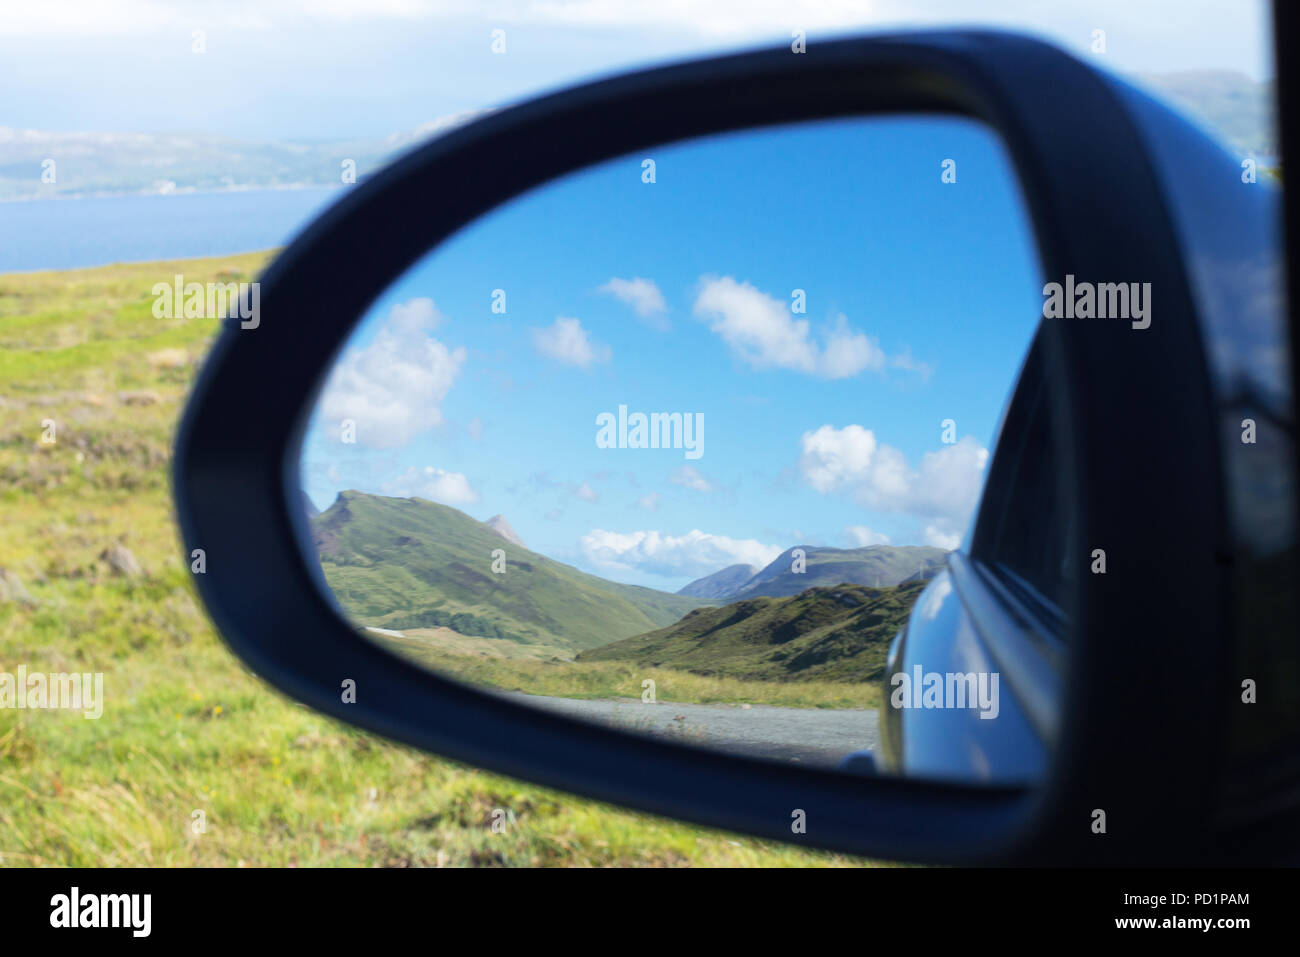 Cuillin Mountain range seen through the rear view mirror of a car in Isle of Skye, Scotland - Stock Image